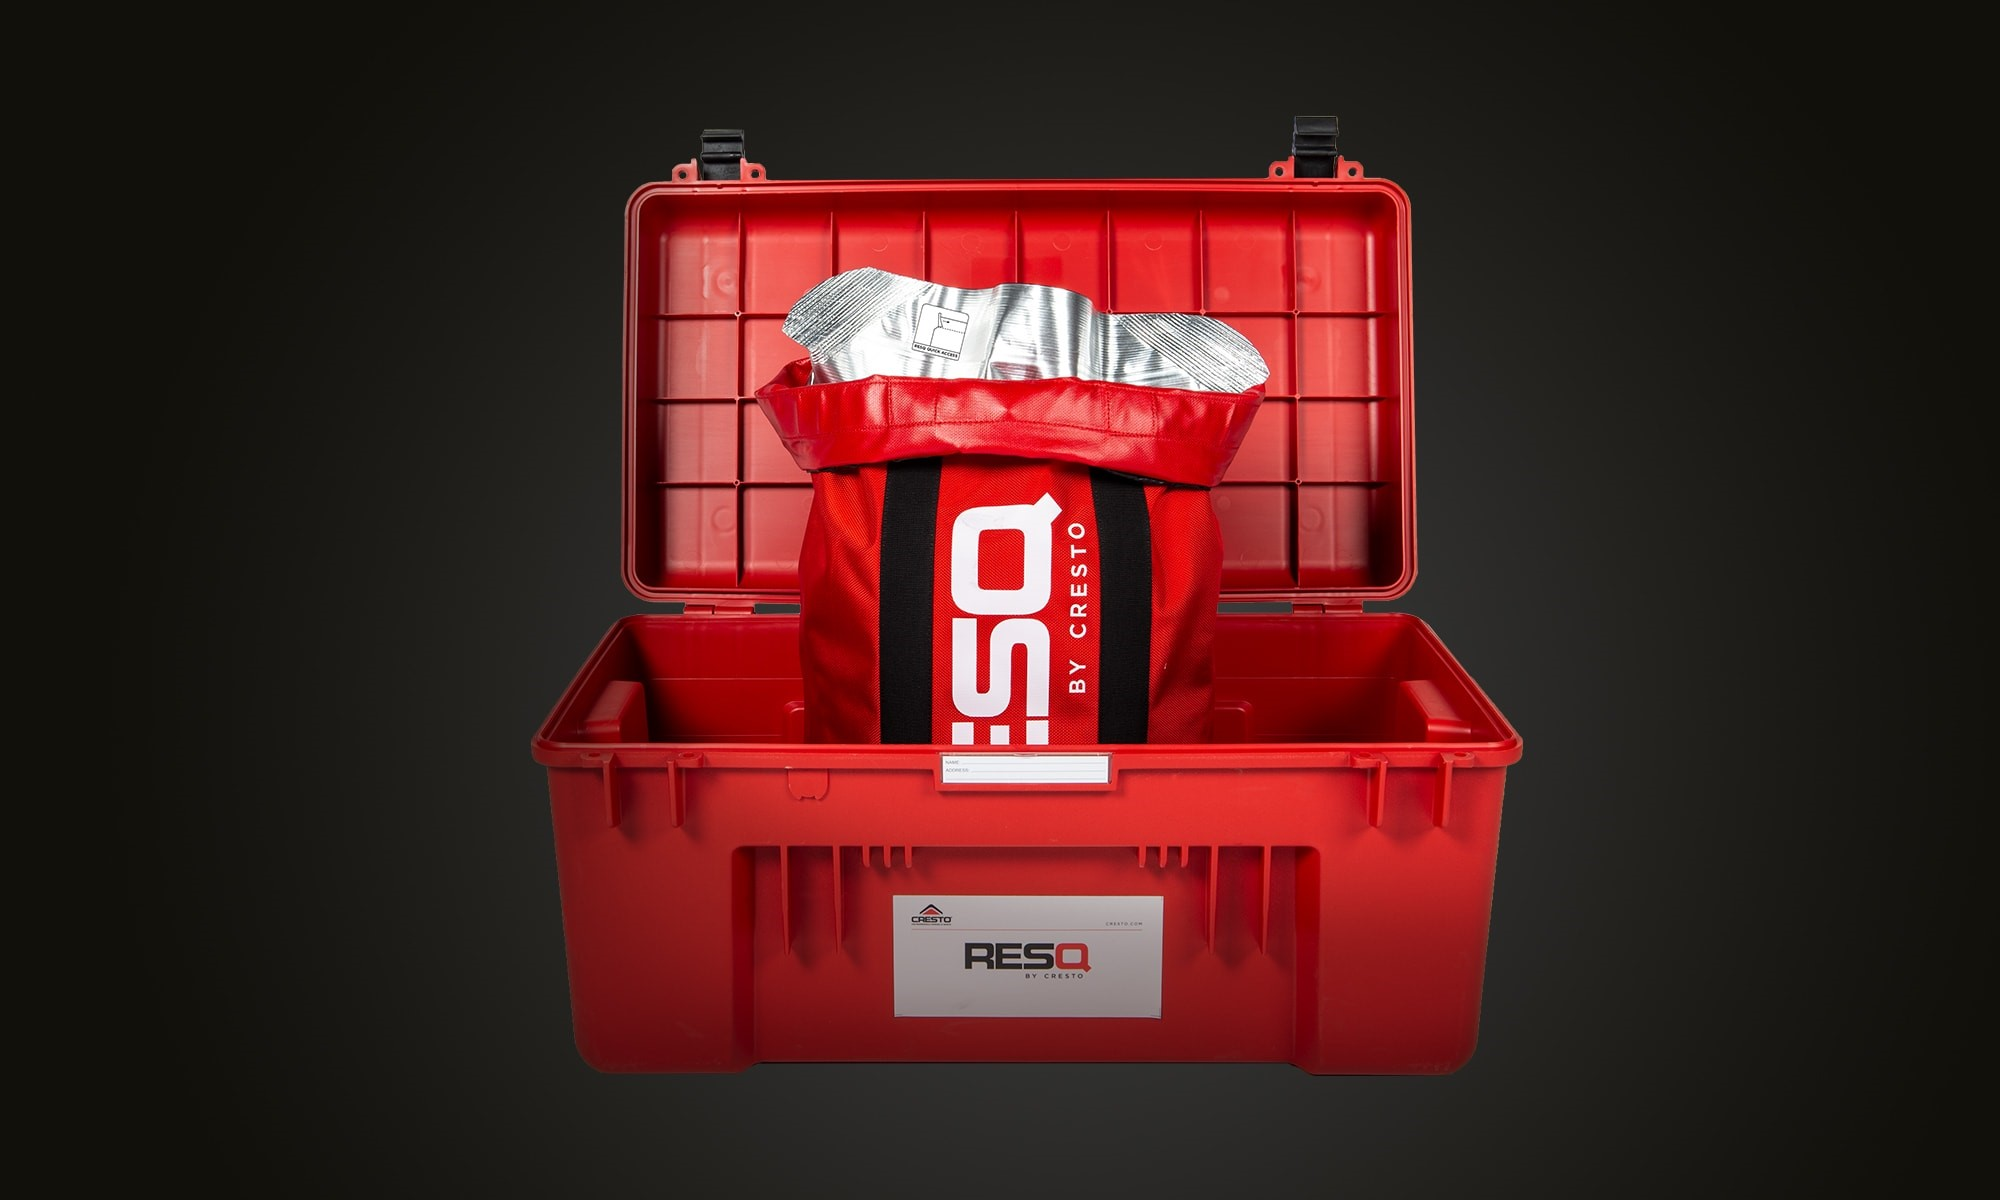 Red RESQ box with vacuum packed rescue equipment